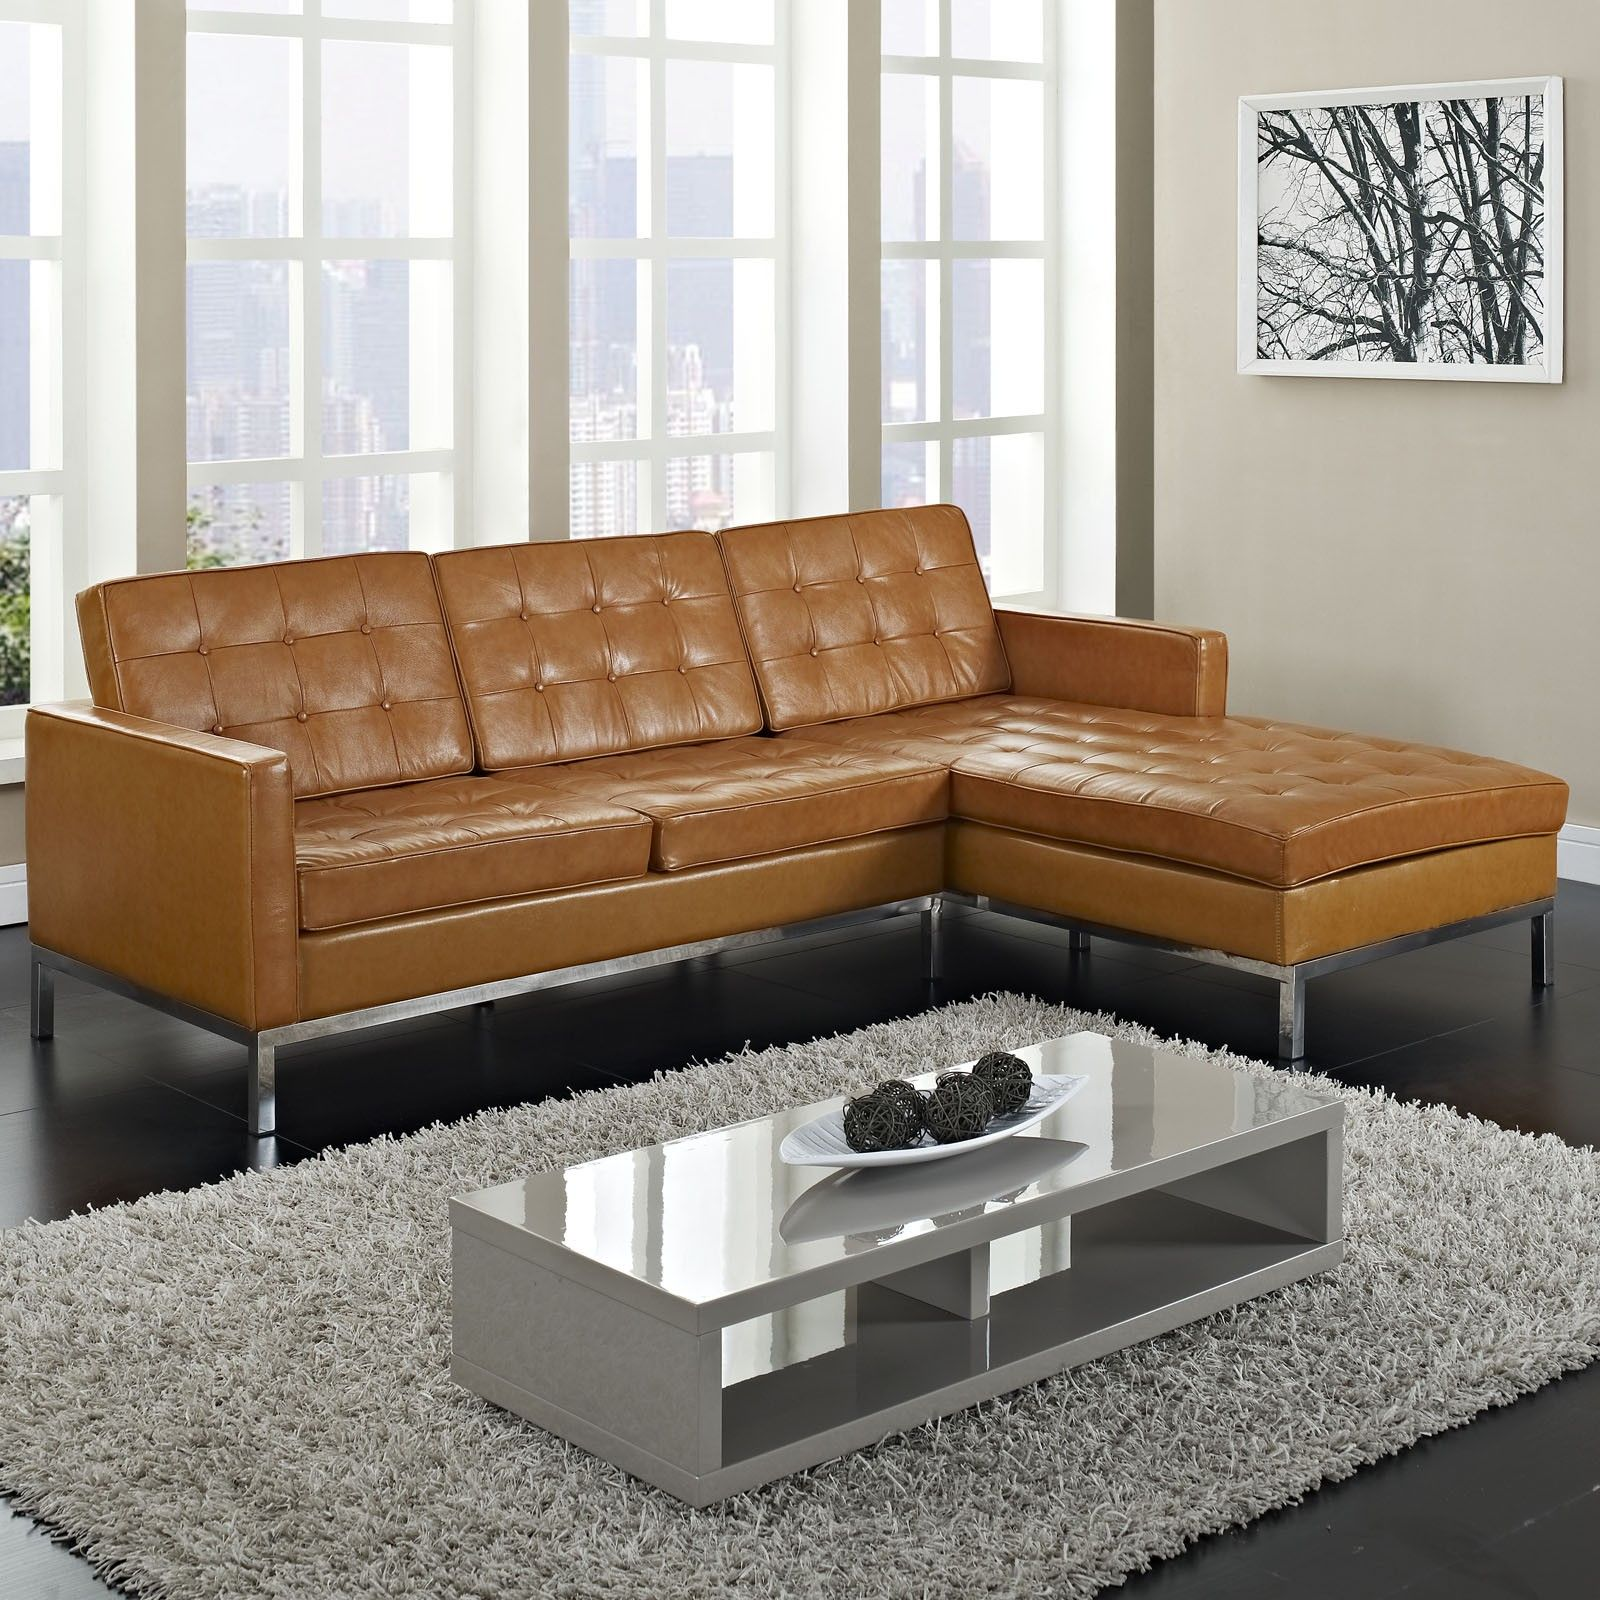 Furniture, Maximizing Small Living Room Spaces With 3 Piece Brown Leather  Tufted Sectional Sofa With Stainless Steel Legs And Glass Top Low Coffee  Table